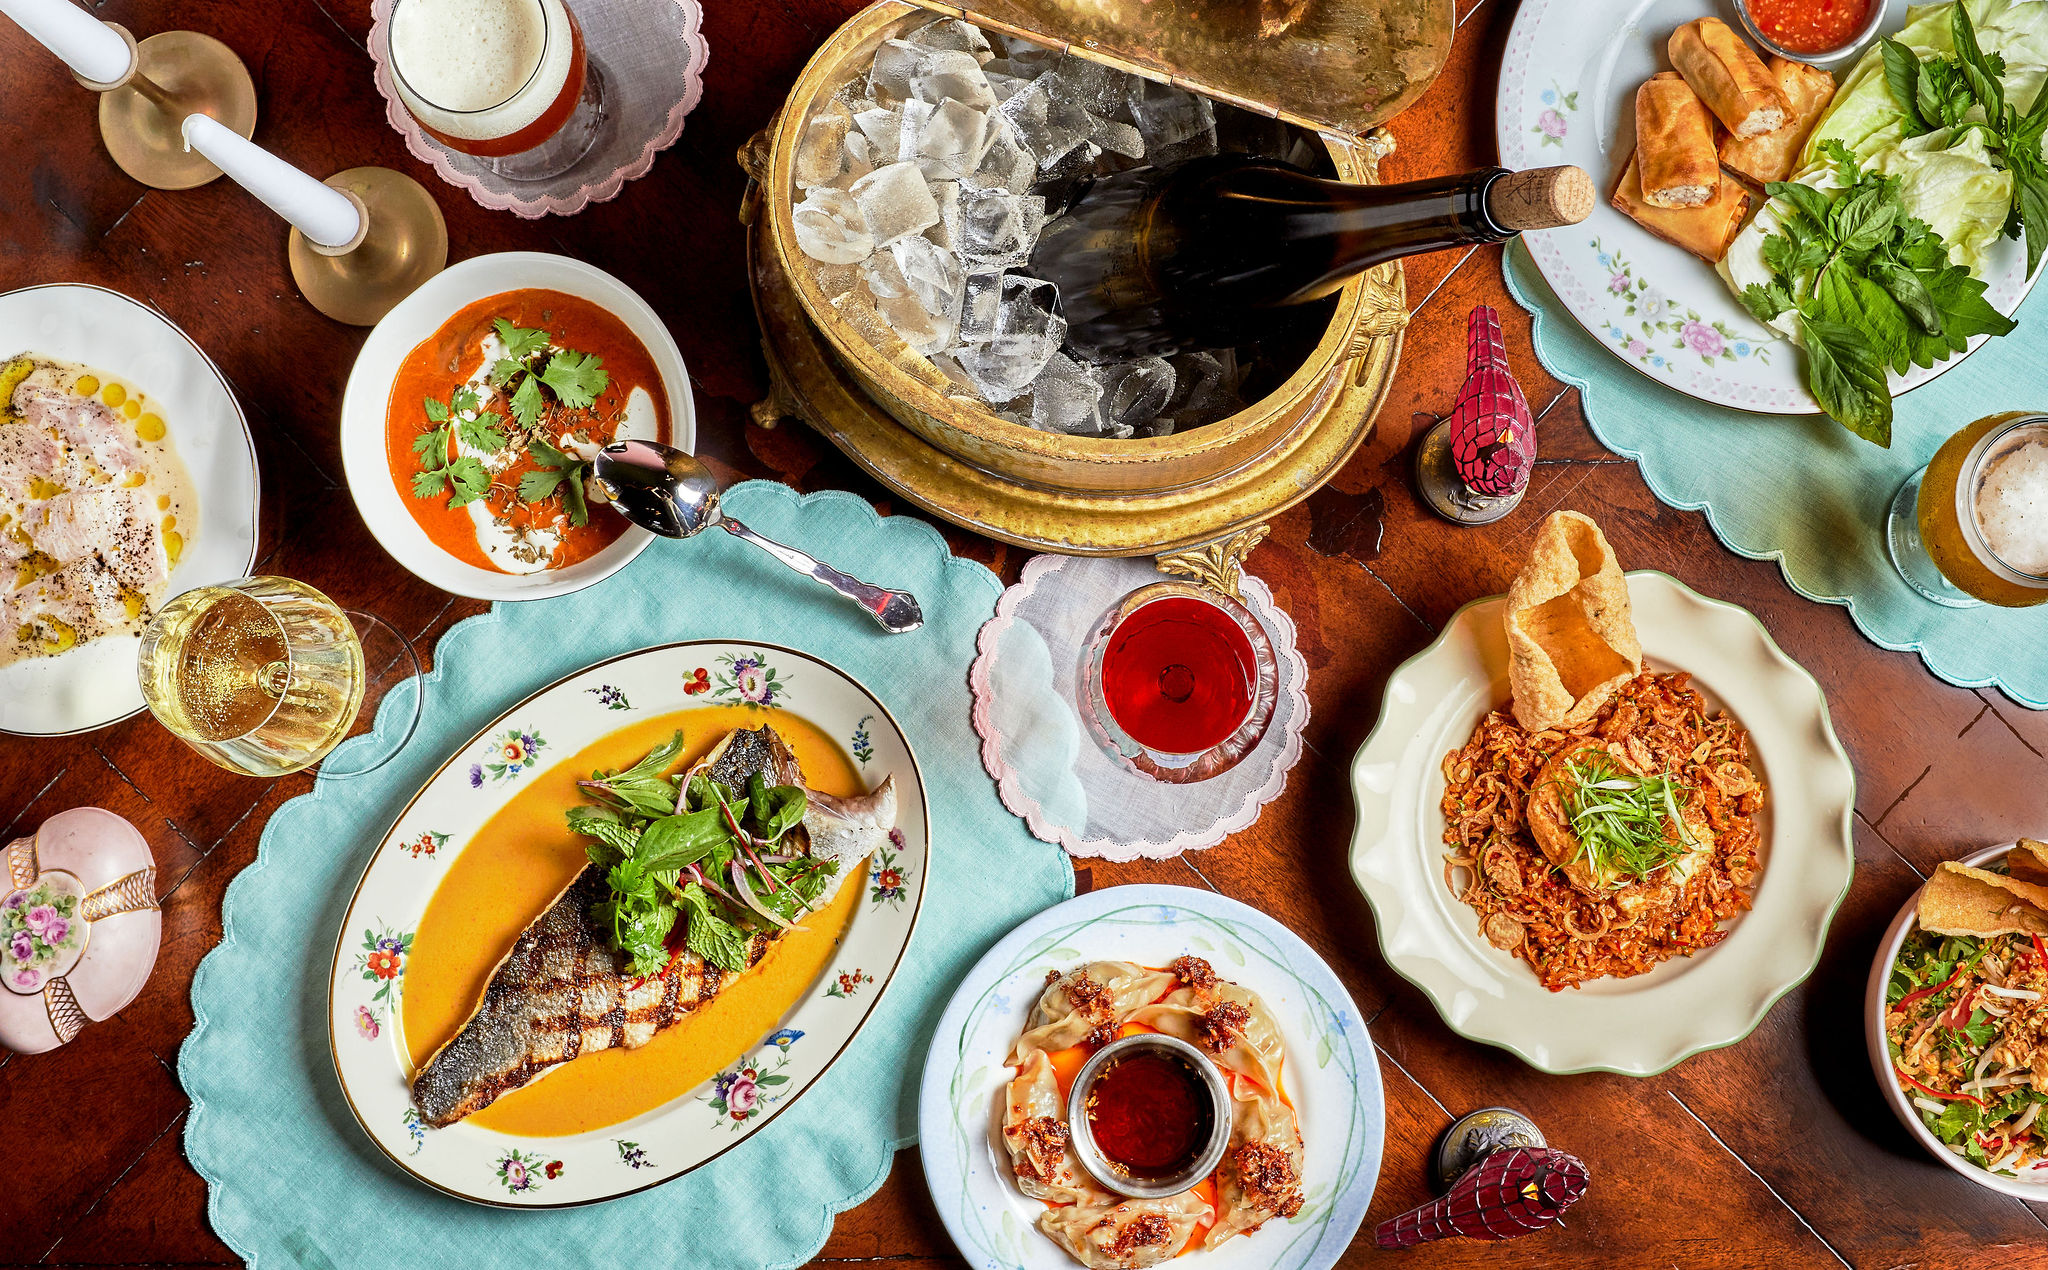 Dishes from Cobi's at Dhaba in Santa Monica laid out with colorful plates and a wood table.